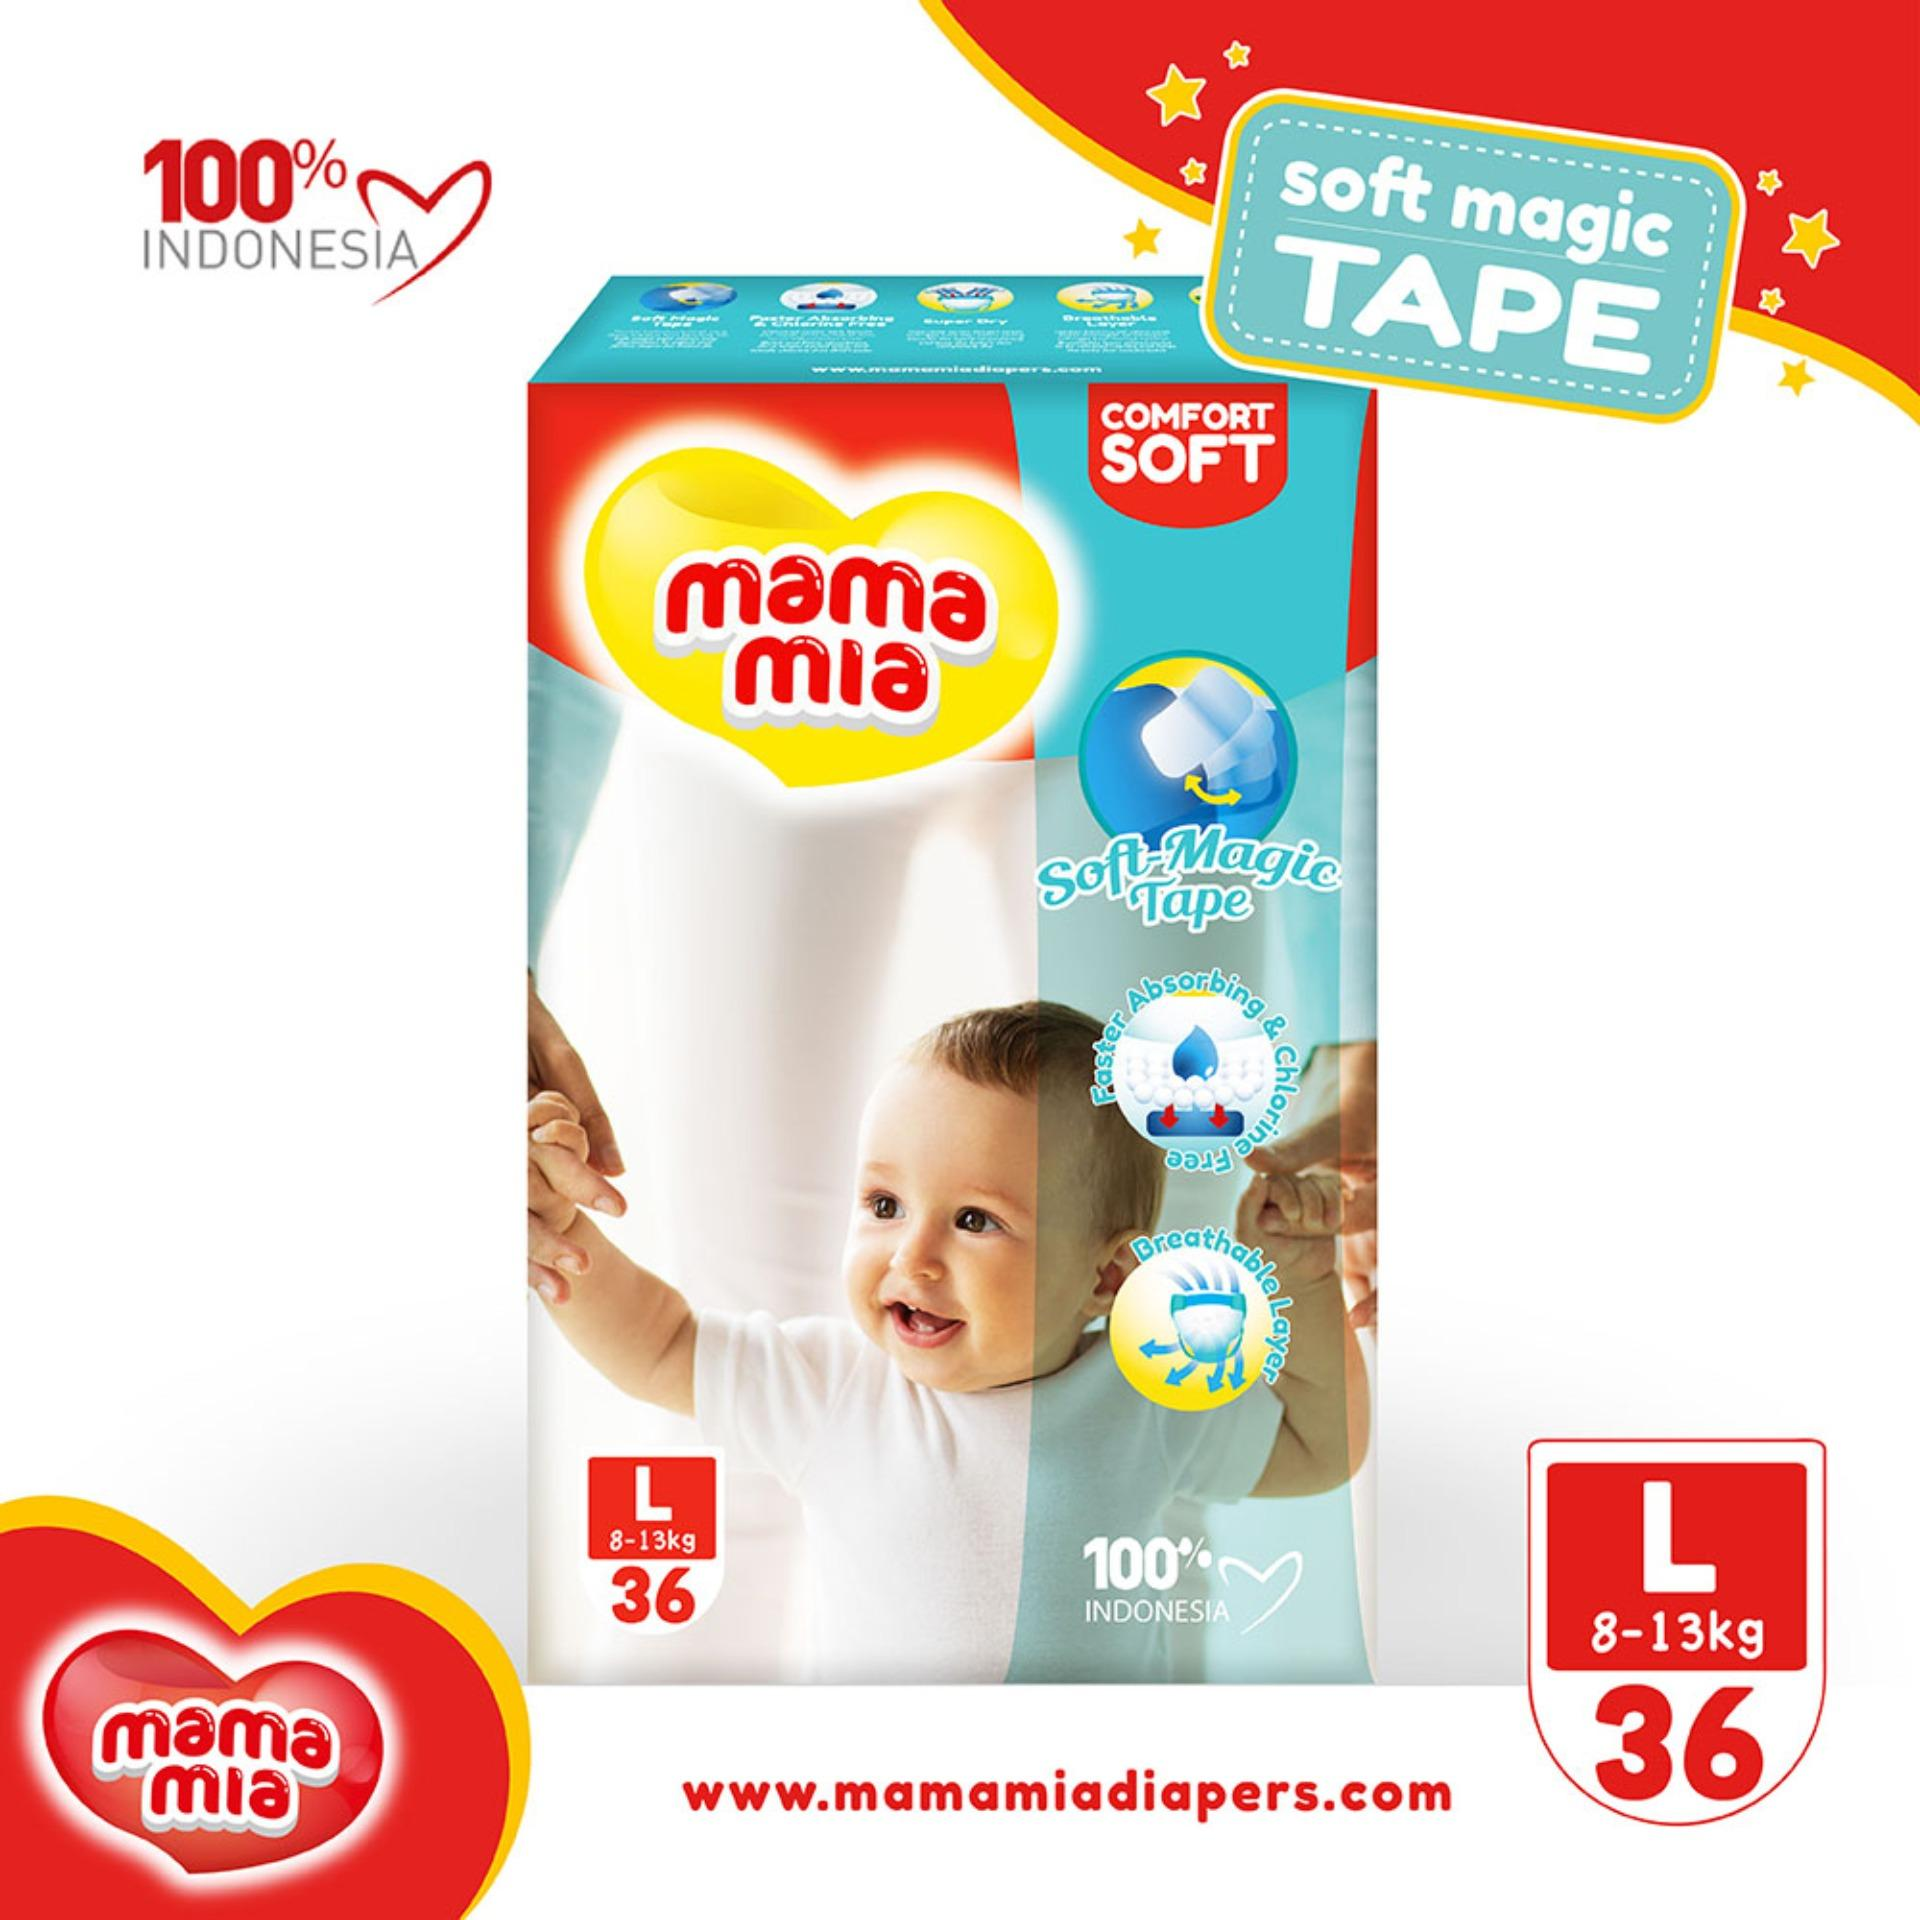 Fitti Tape Rainbow S 12 Daftar Harga Terkini Dan Terlengkap Toko Certainty Regular L 10 Free 2 Mitu Travel Pack Mamamia Baby Diapers Soft Magic L36 Popok Sekali Pakai Model Perekat